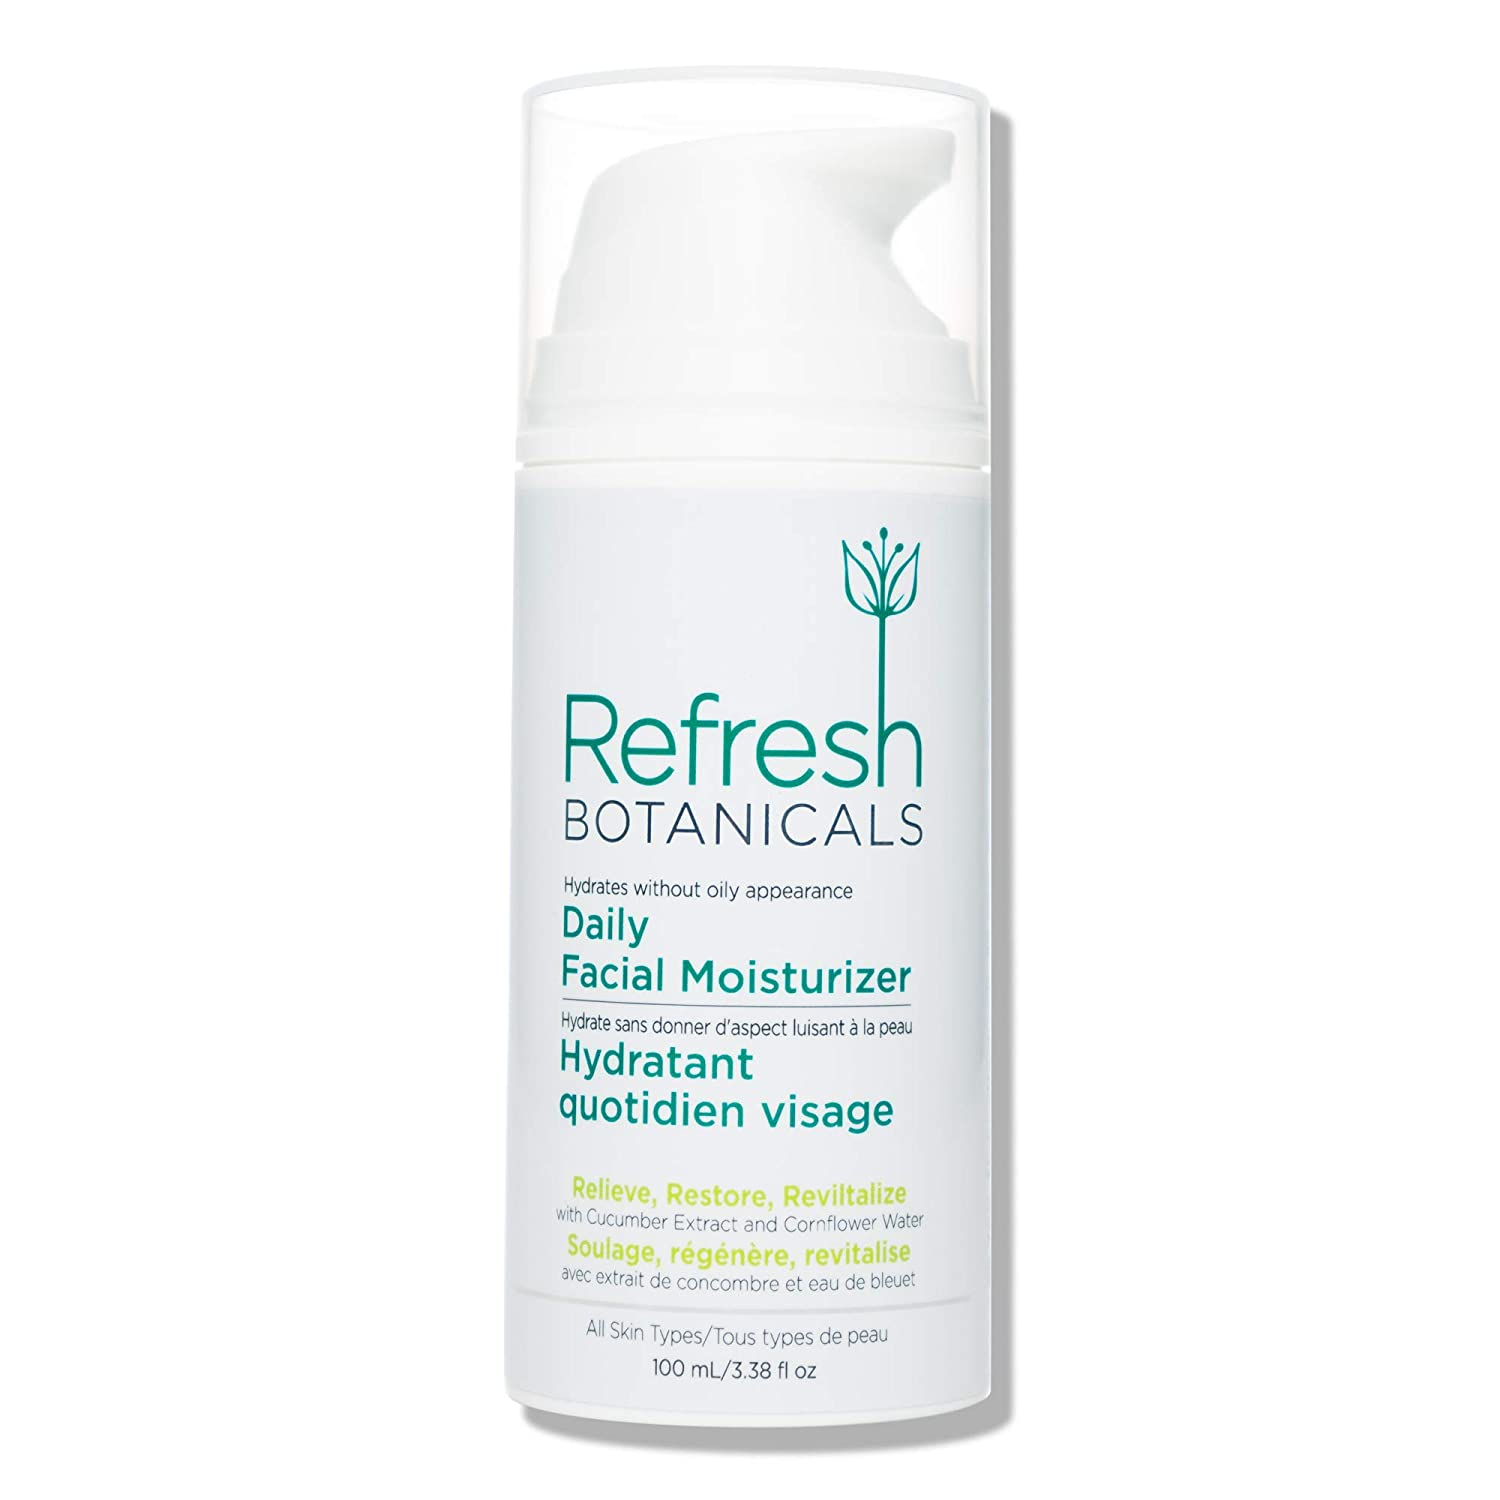 Refresh Botanicals Organic Face Moisturizer, A Natural Anti Aging Cream Lotion for Dry, Sensitive, Oily, Acne Prone Skin | Suitable to Use for Eczema, Rosacea, Psoriasis - Cucumber, 3.38 fl oz